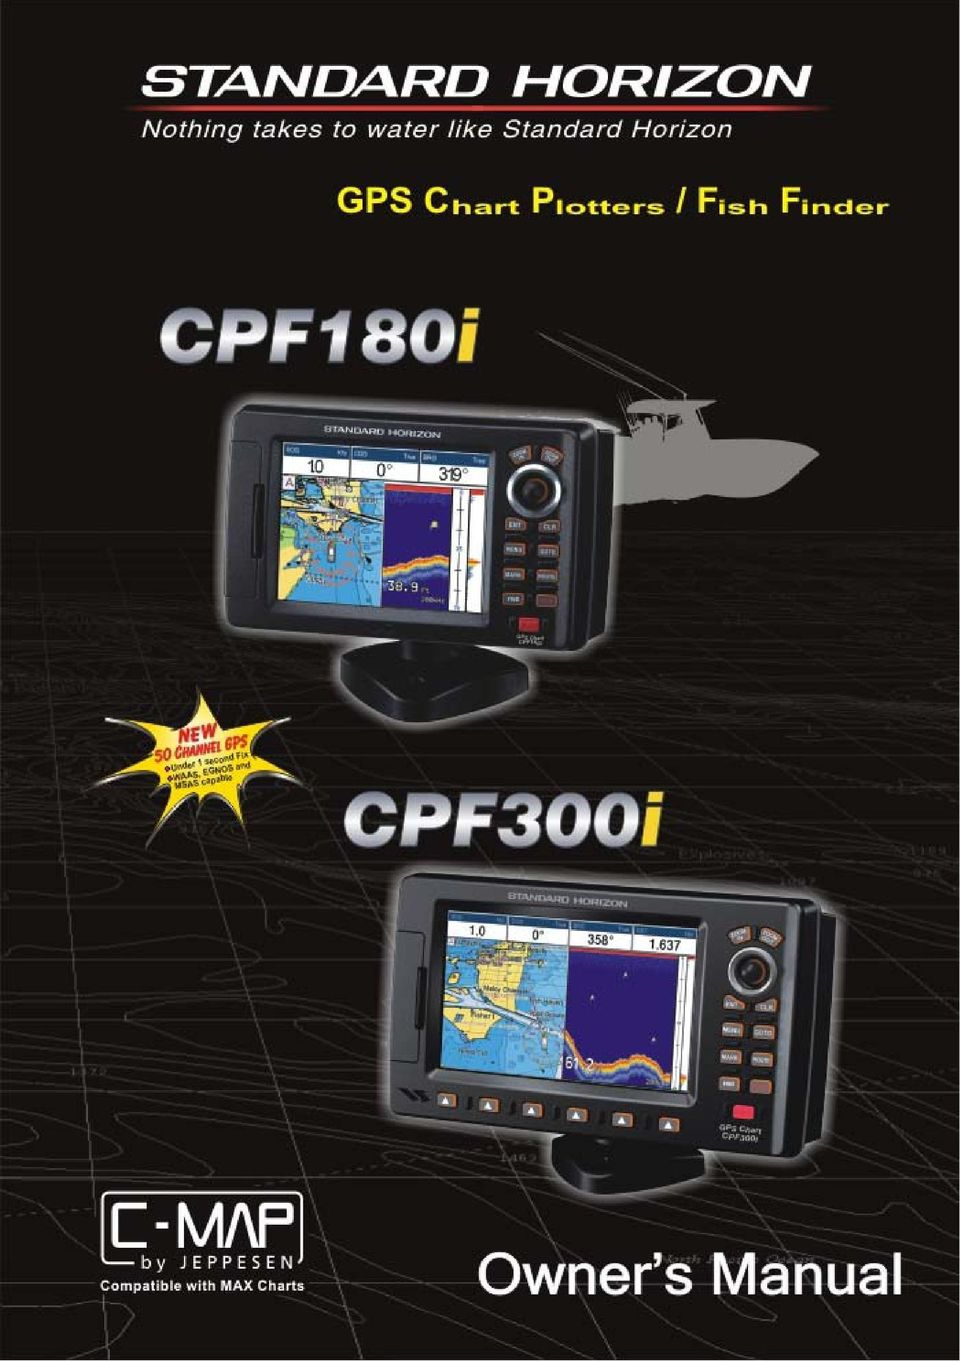 Color GPS Chart Plotters/Fish Finder  CPF180i CPF300i  Owner's